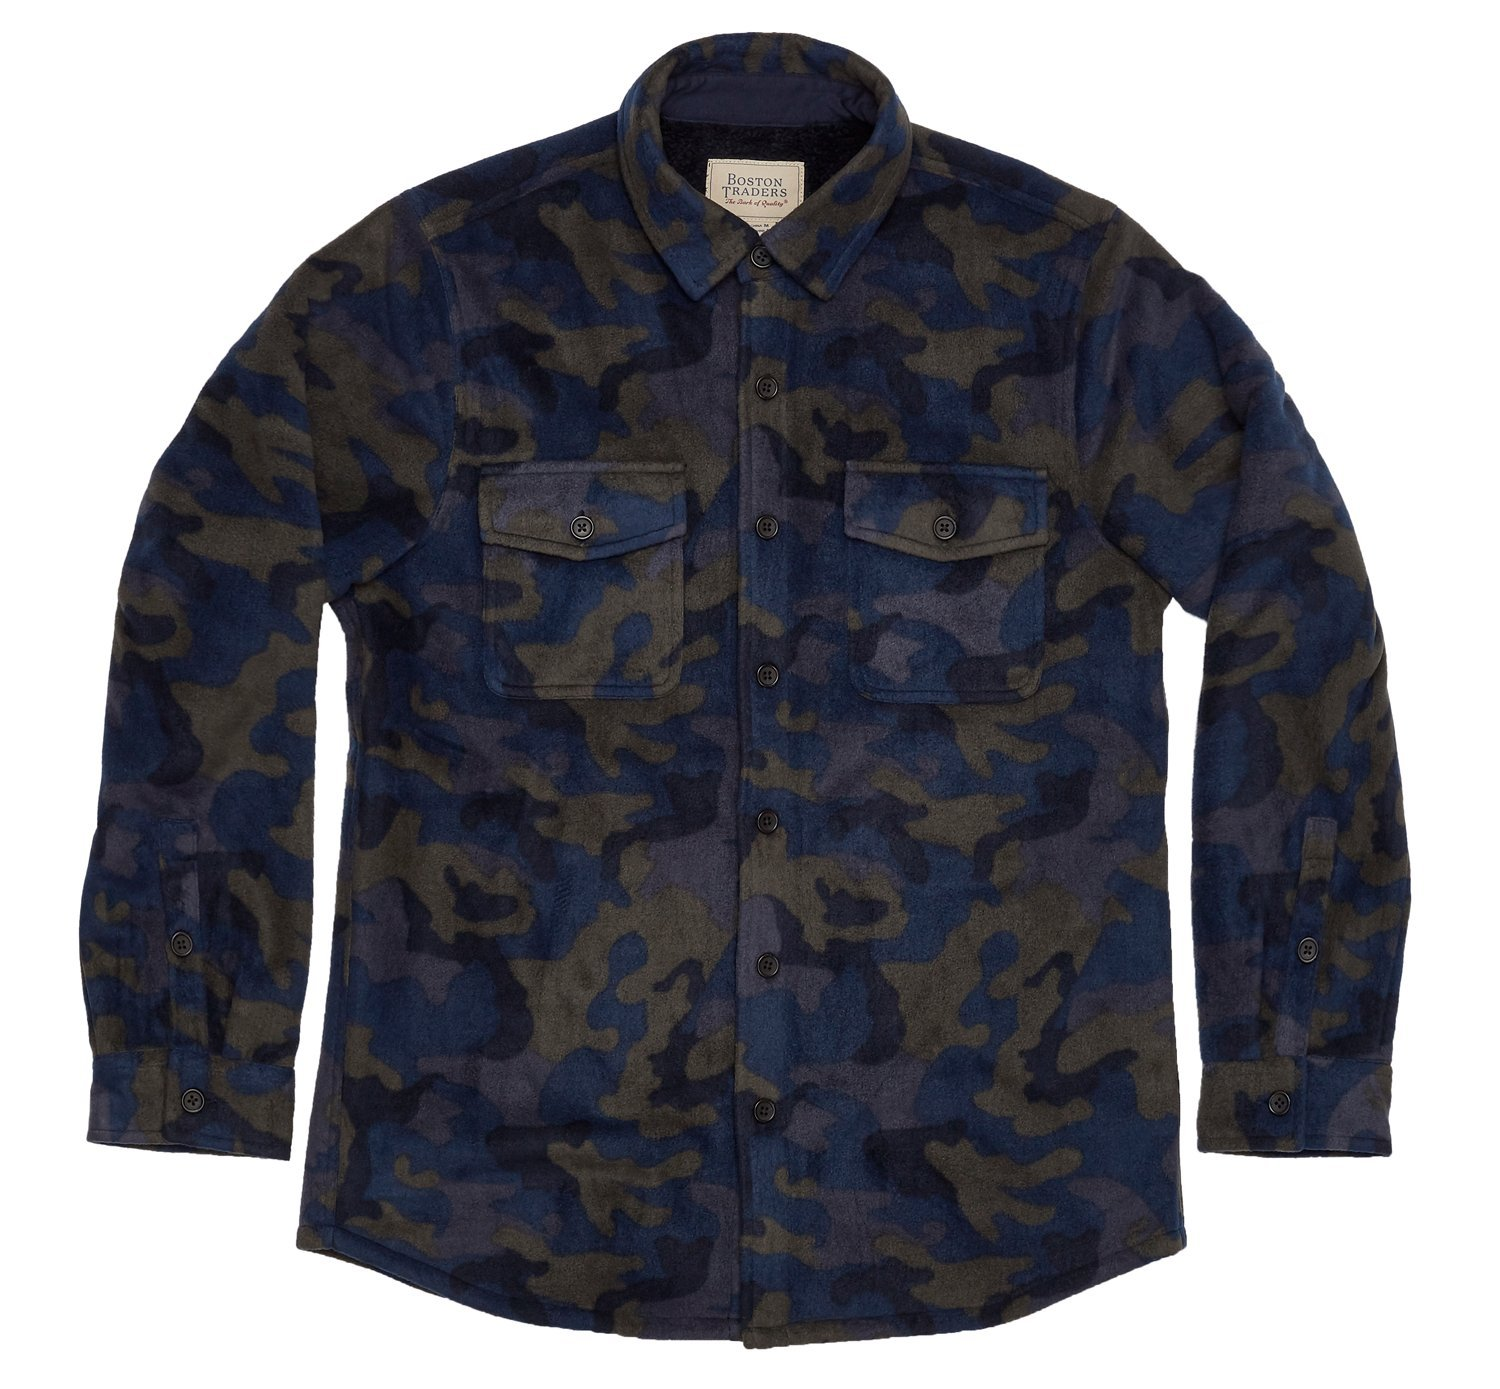 Boston Traders Men's Plush-Lined Flannel Shirt Jacket, X-Large, Eclipse Camo